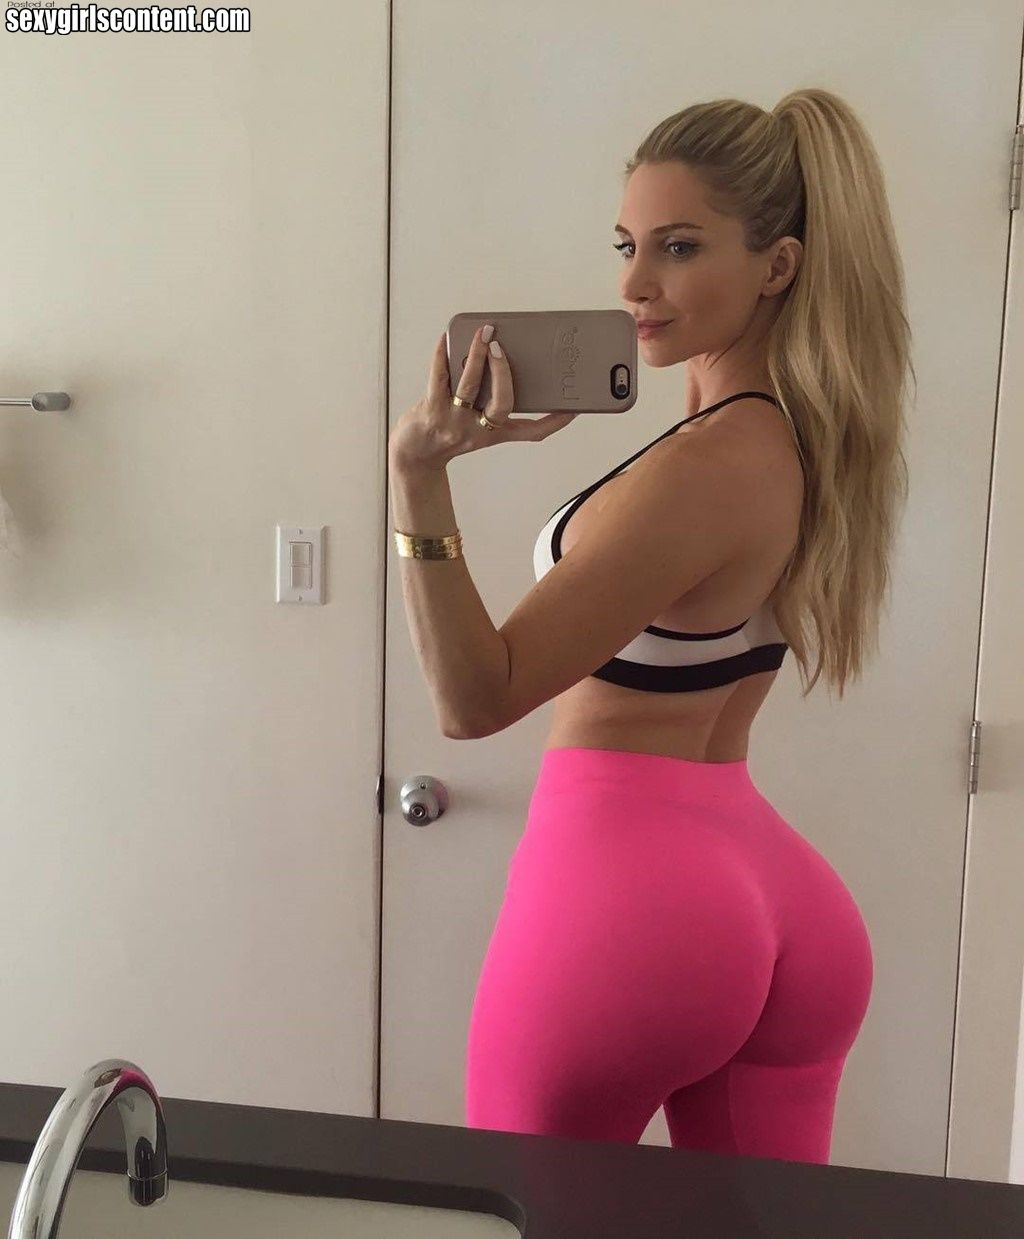 Hot Butts Wrapped In Yoga Pants 33 Pics Amanda Lee Women Model